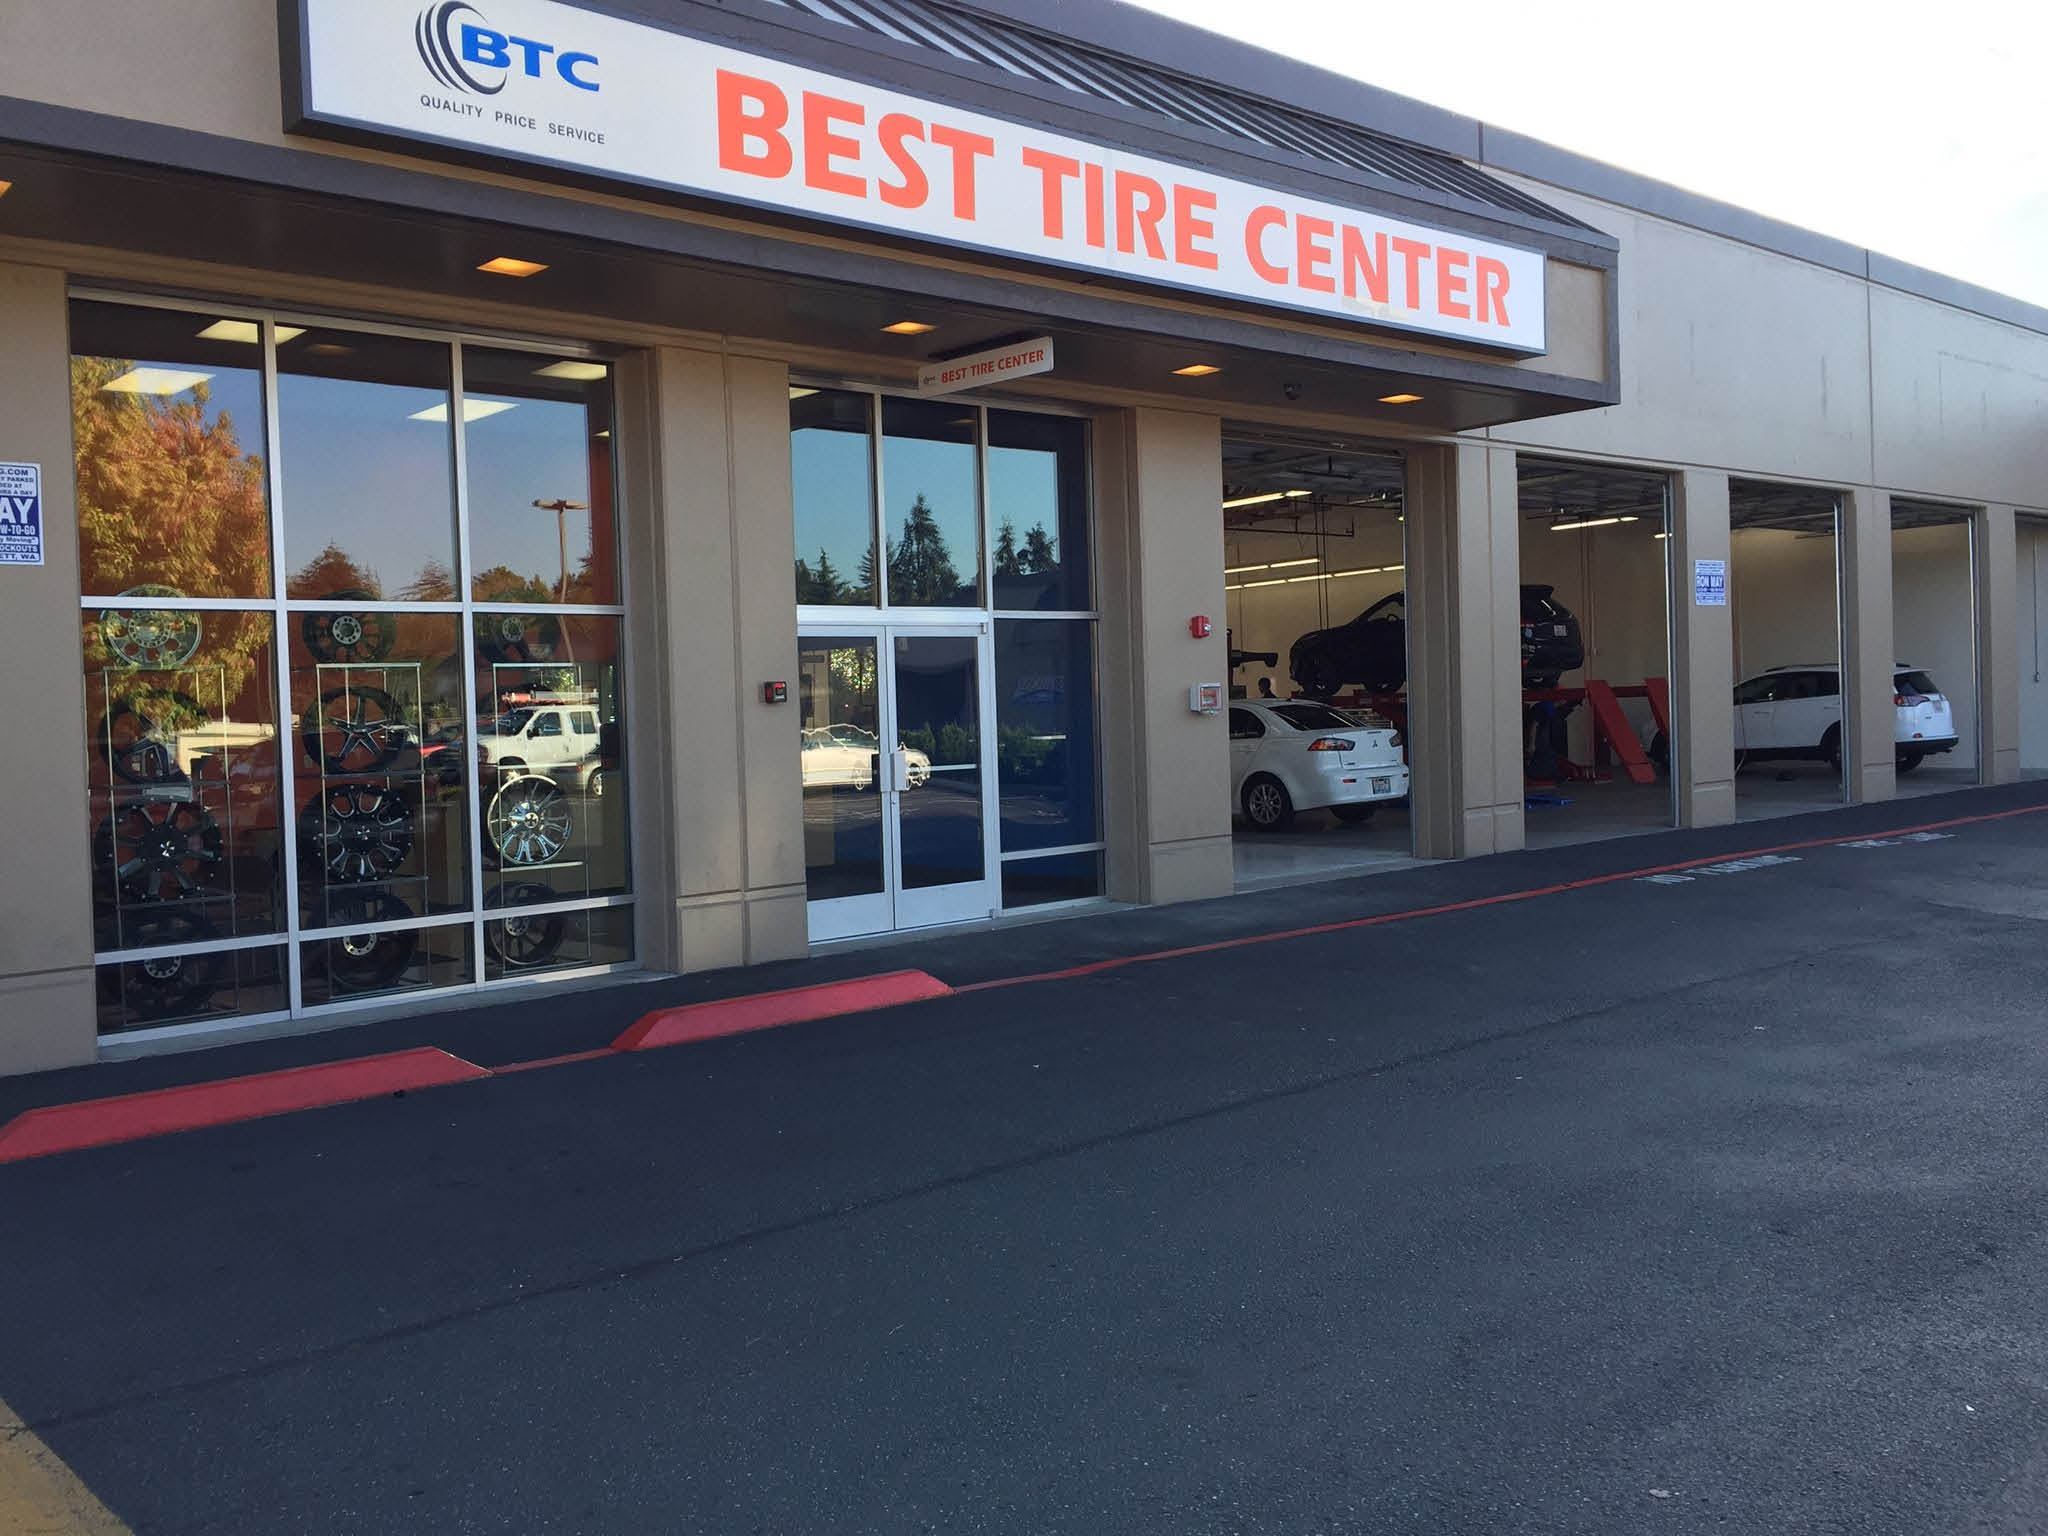 Tire stores in Everett, WA - Tire stores in Everett, WA - outside of Best Tire Center - exterior of Best Tire Center